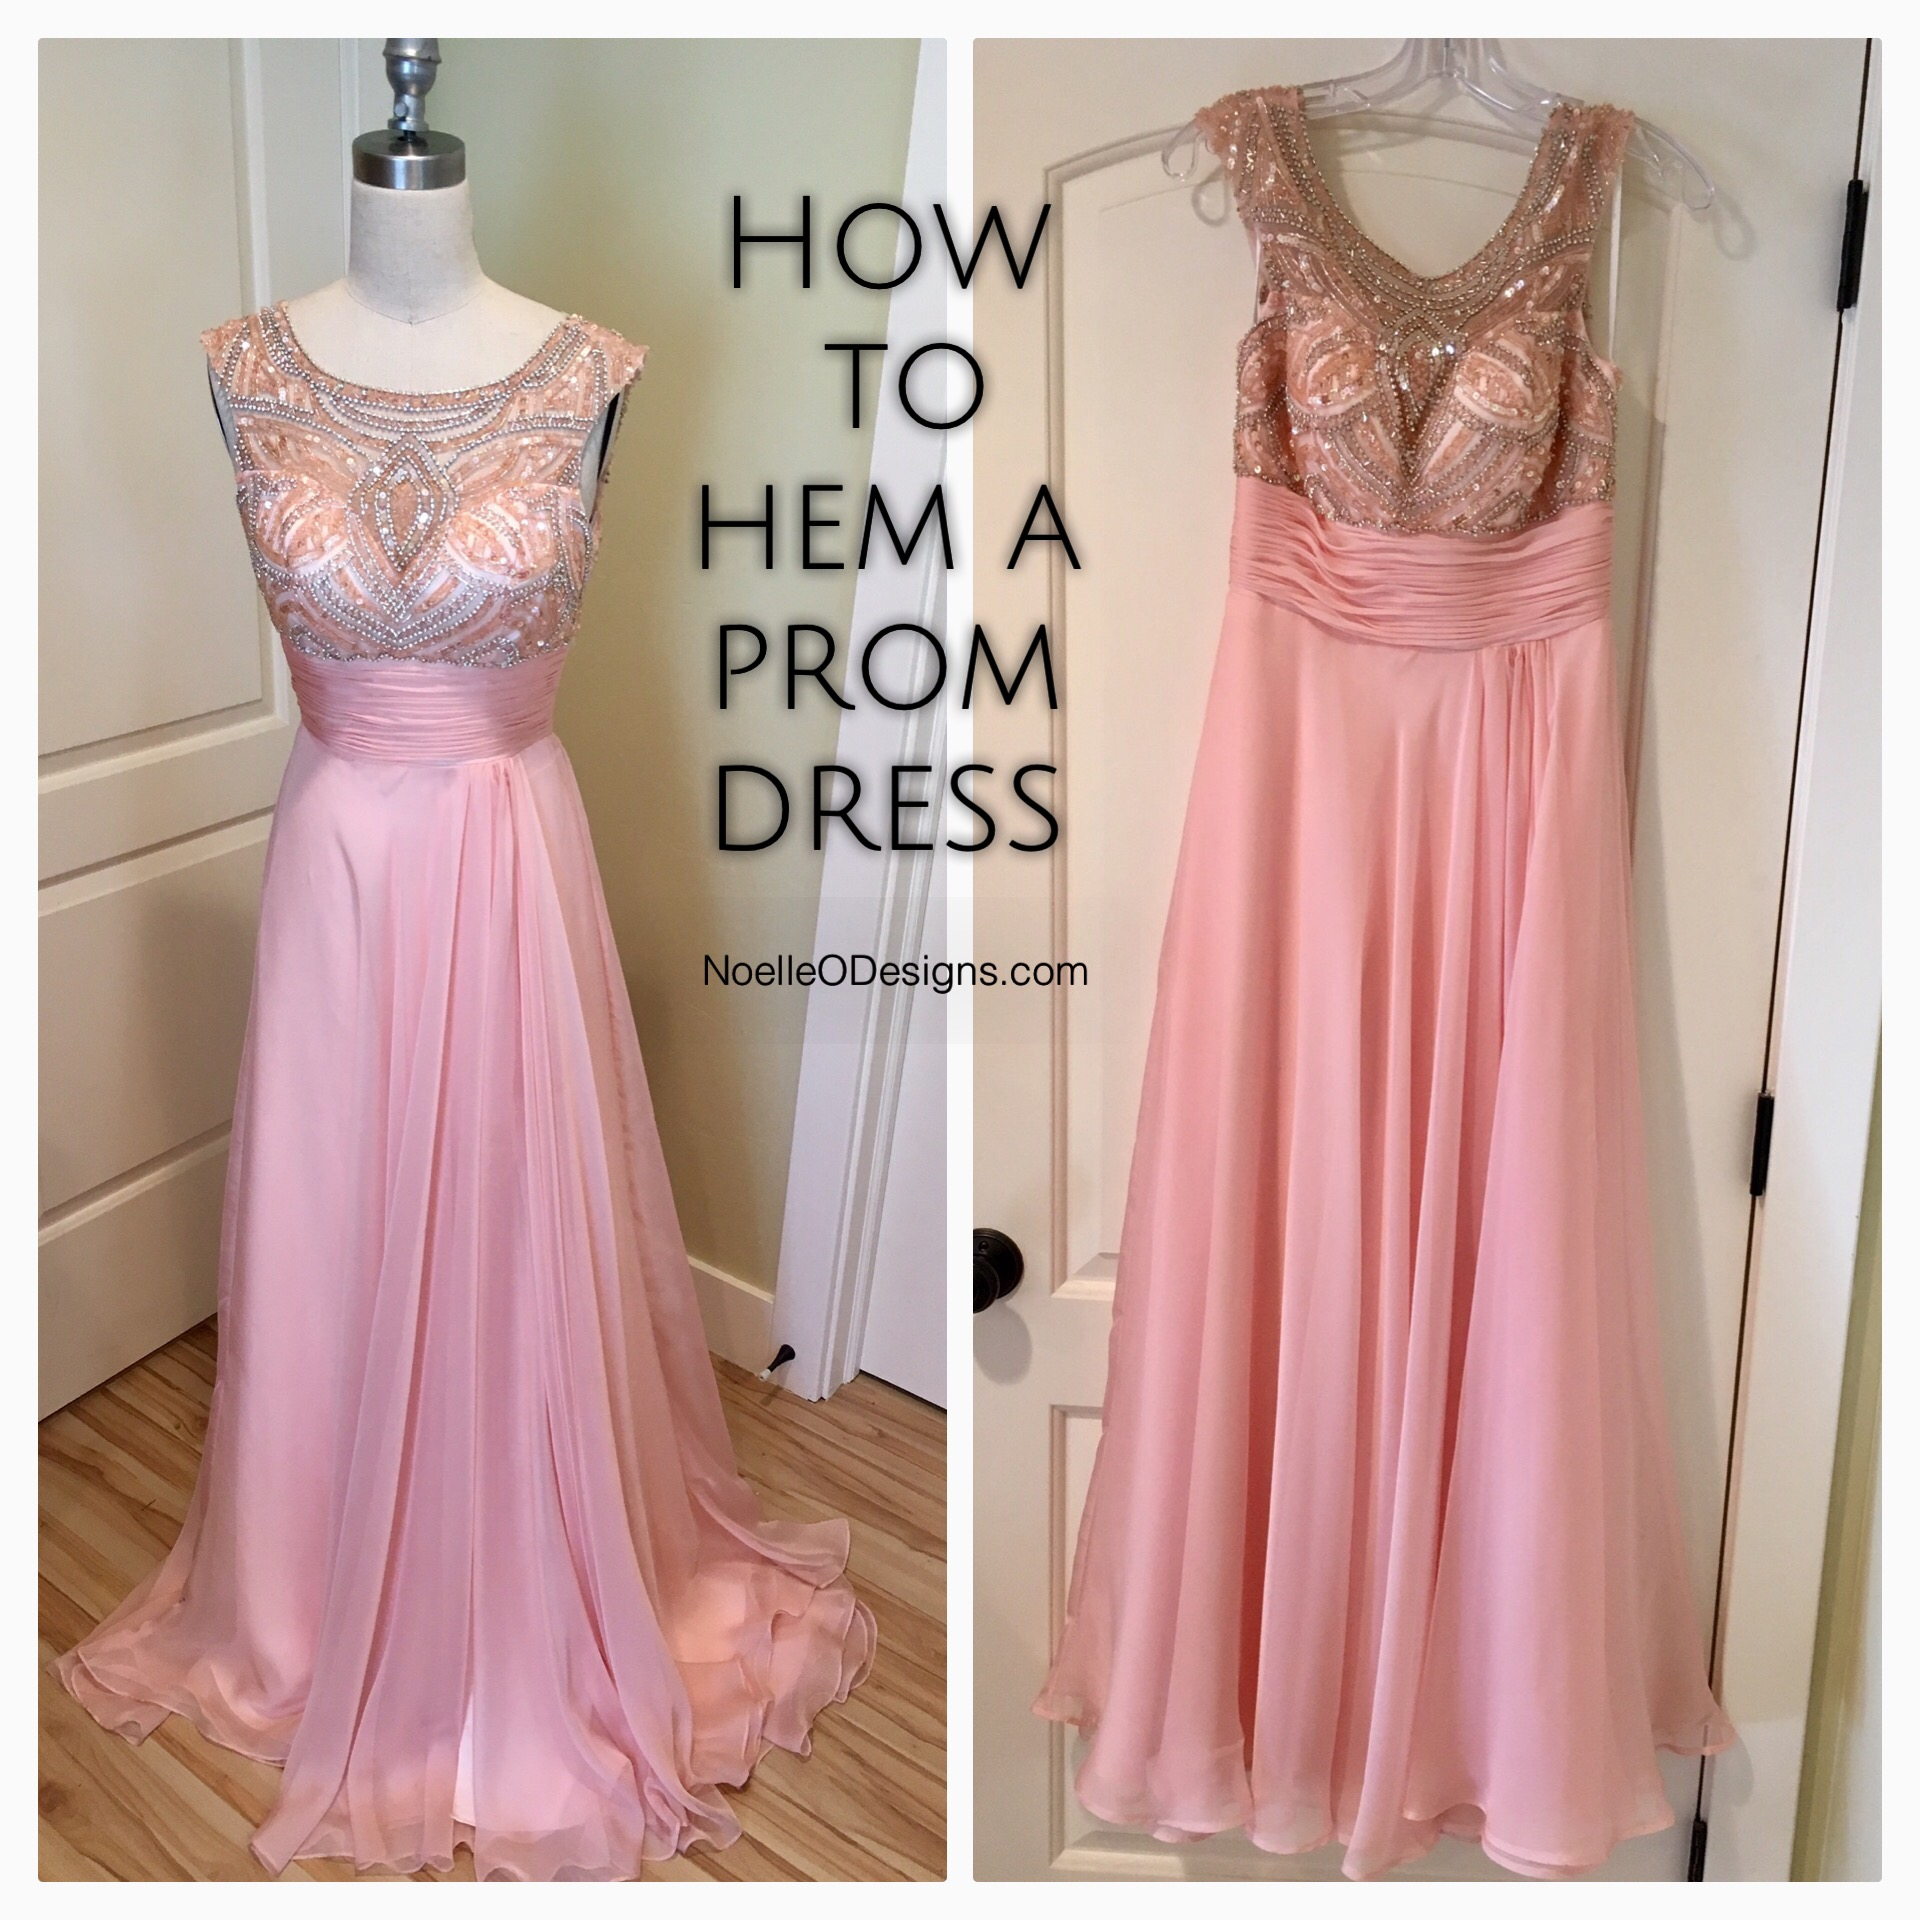 how-to-hem-a-prom-dress-1 - noelle o designs